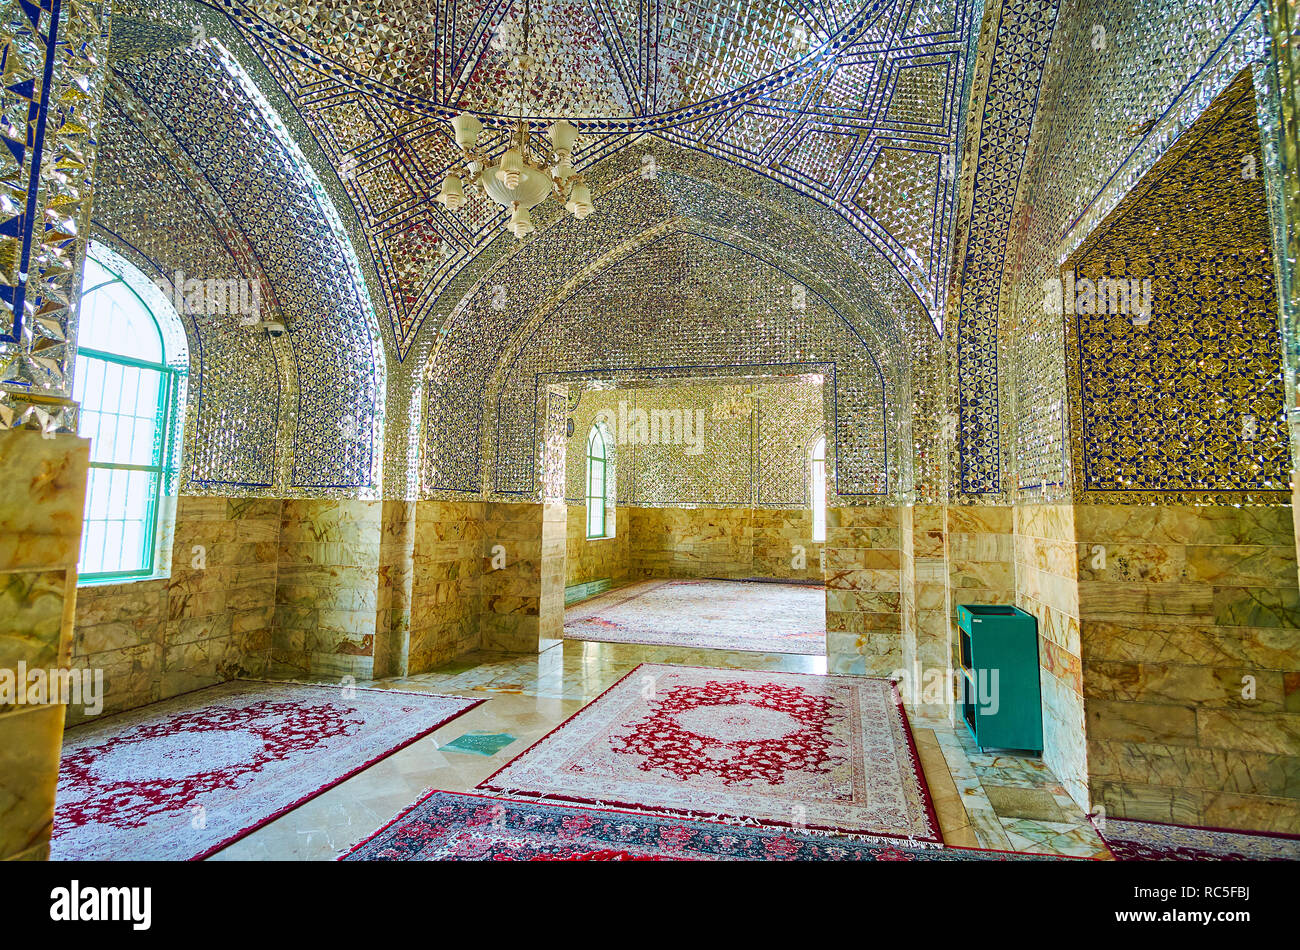 YAZD, IRAN - OCTOBER 18, 2017: The scenic mirror corridor of the modern shrine of Imam Zadeh Jafar with fine Persian carpets on the floor, on October  - Stock Image